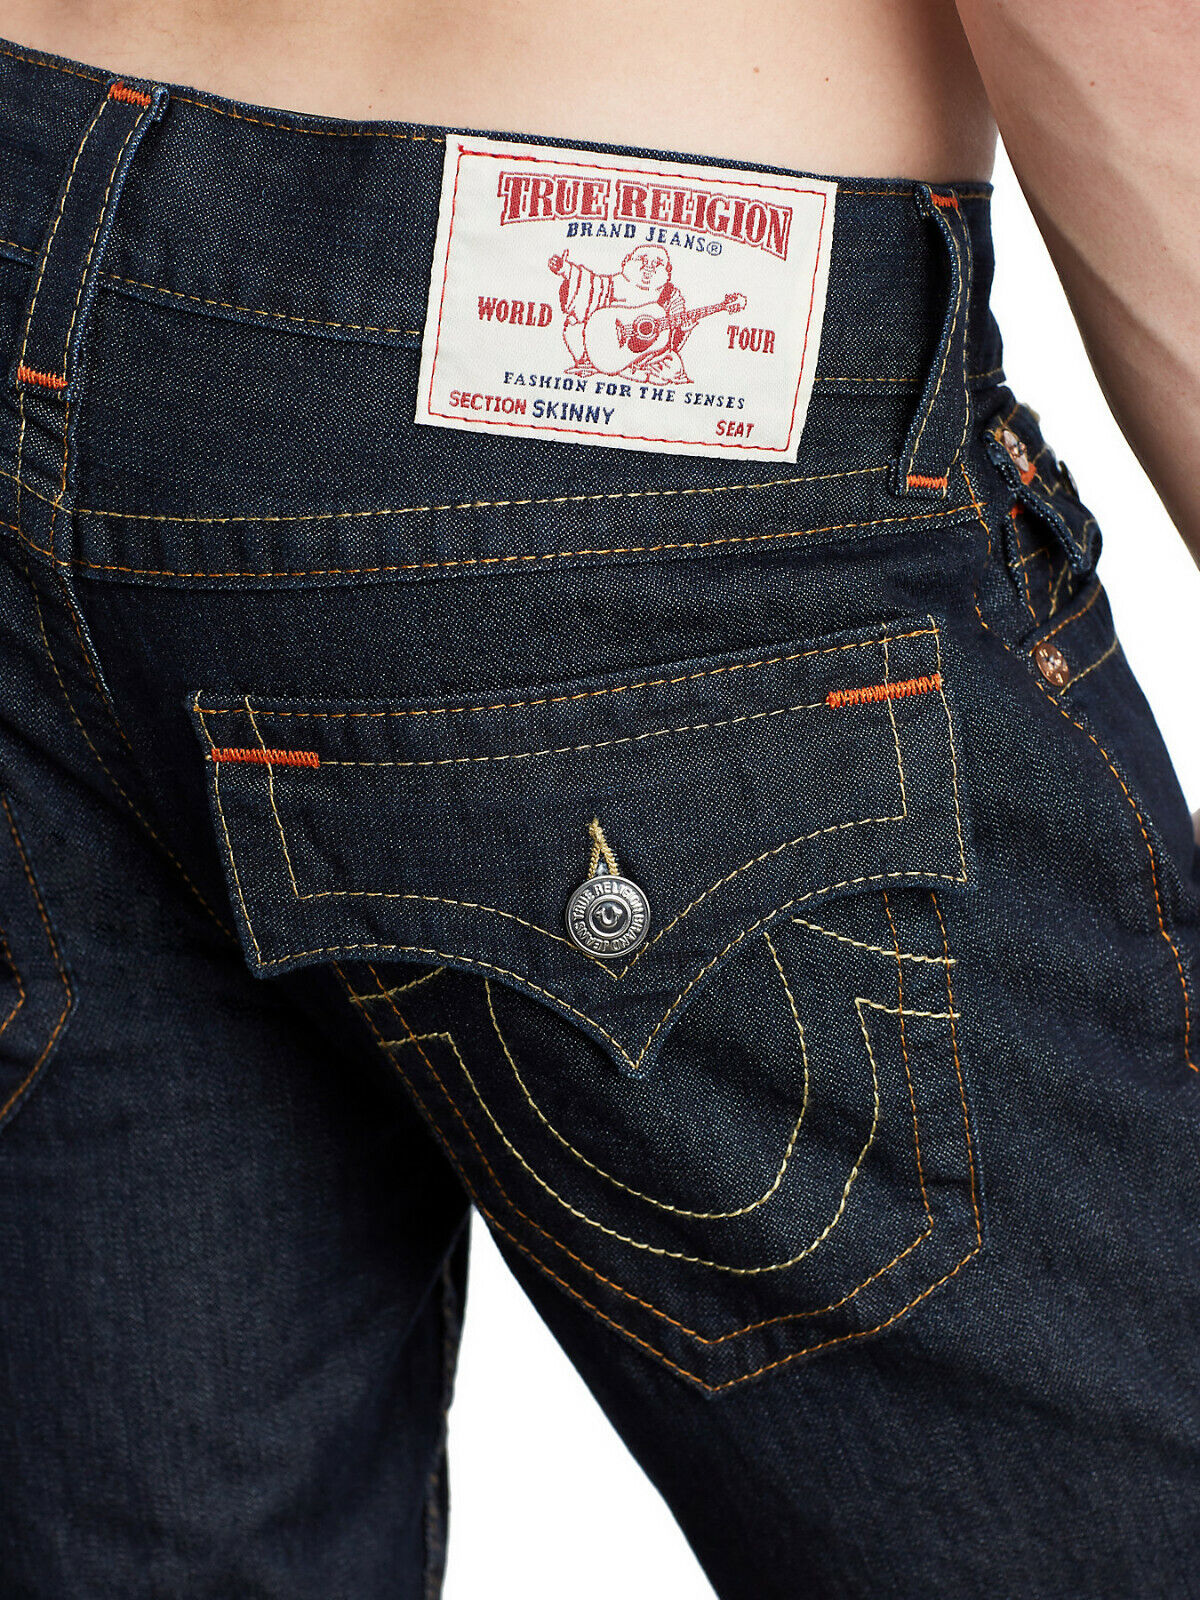 True Religion Men's Rocco Skinny World Tour Jeans w Flap Pockets in Body Rinse